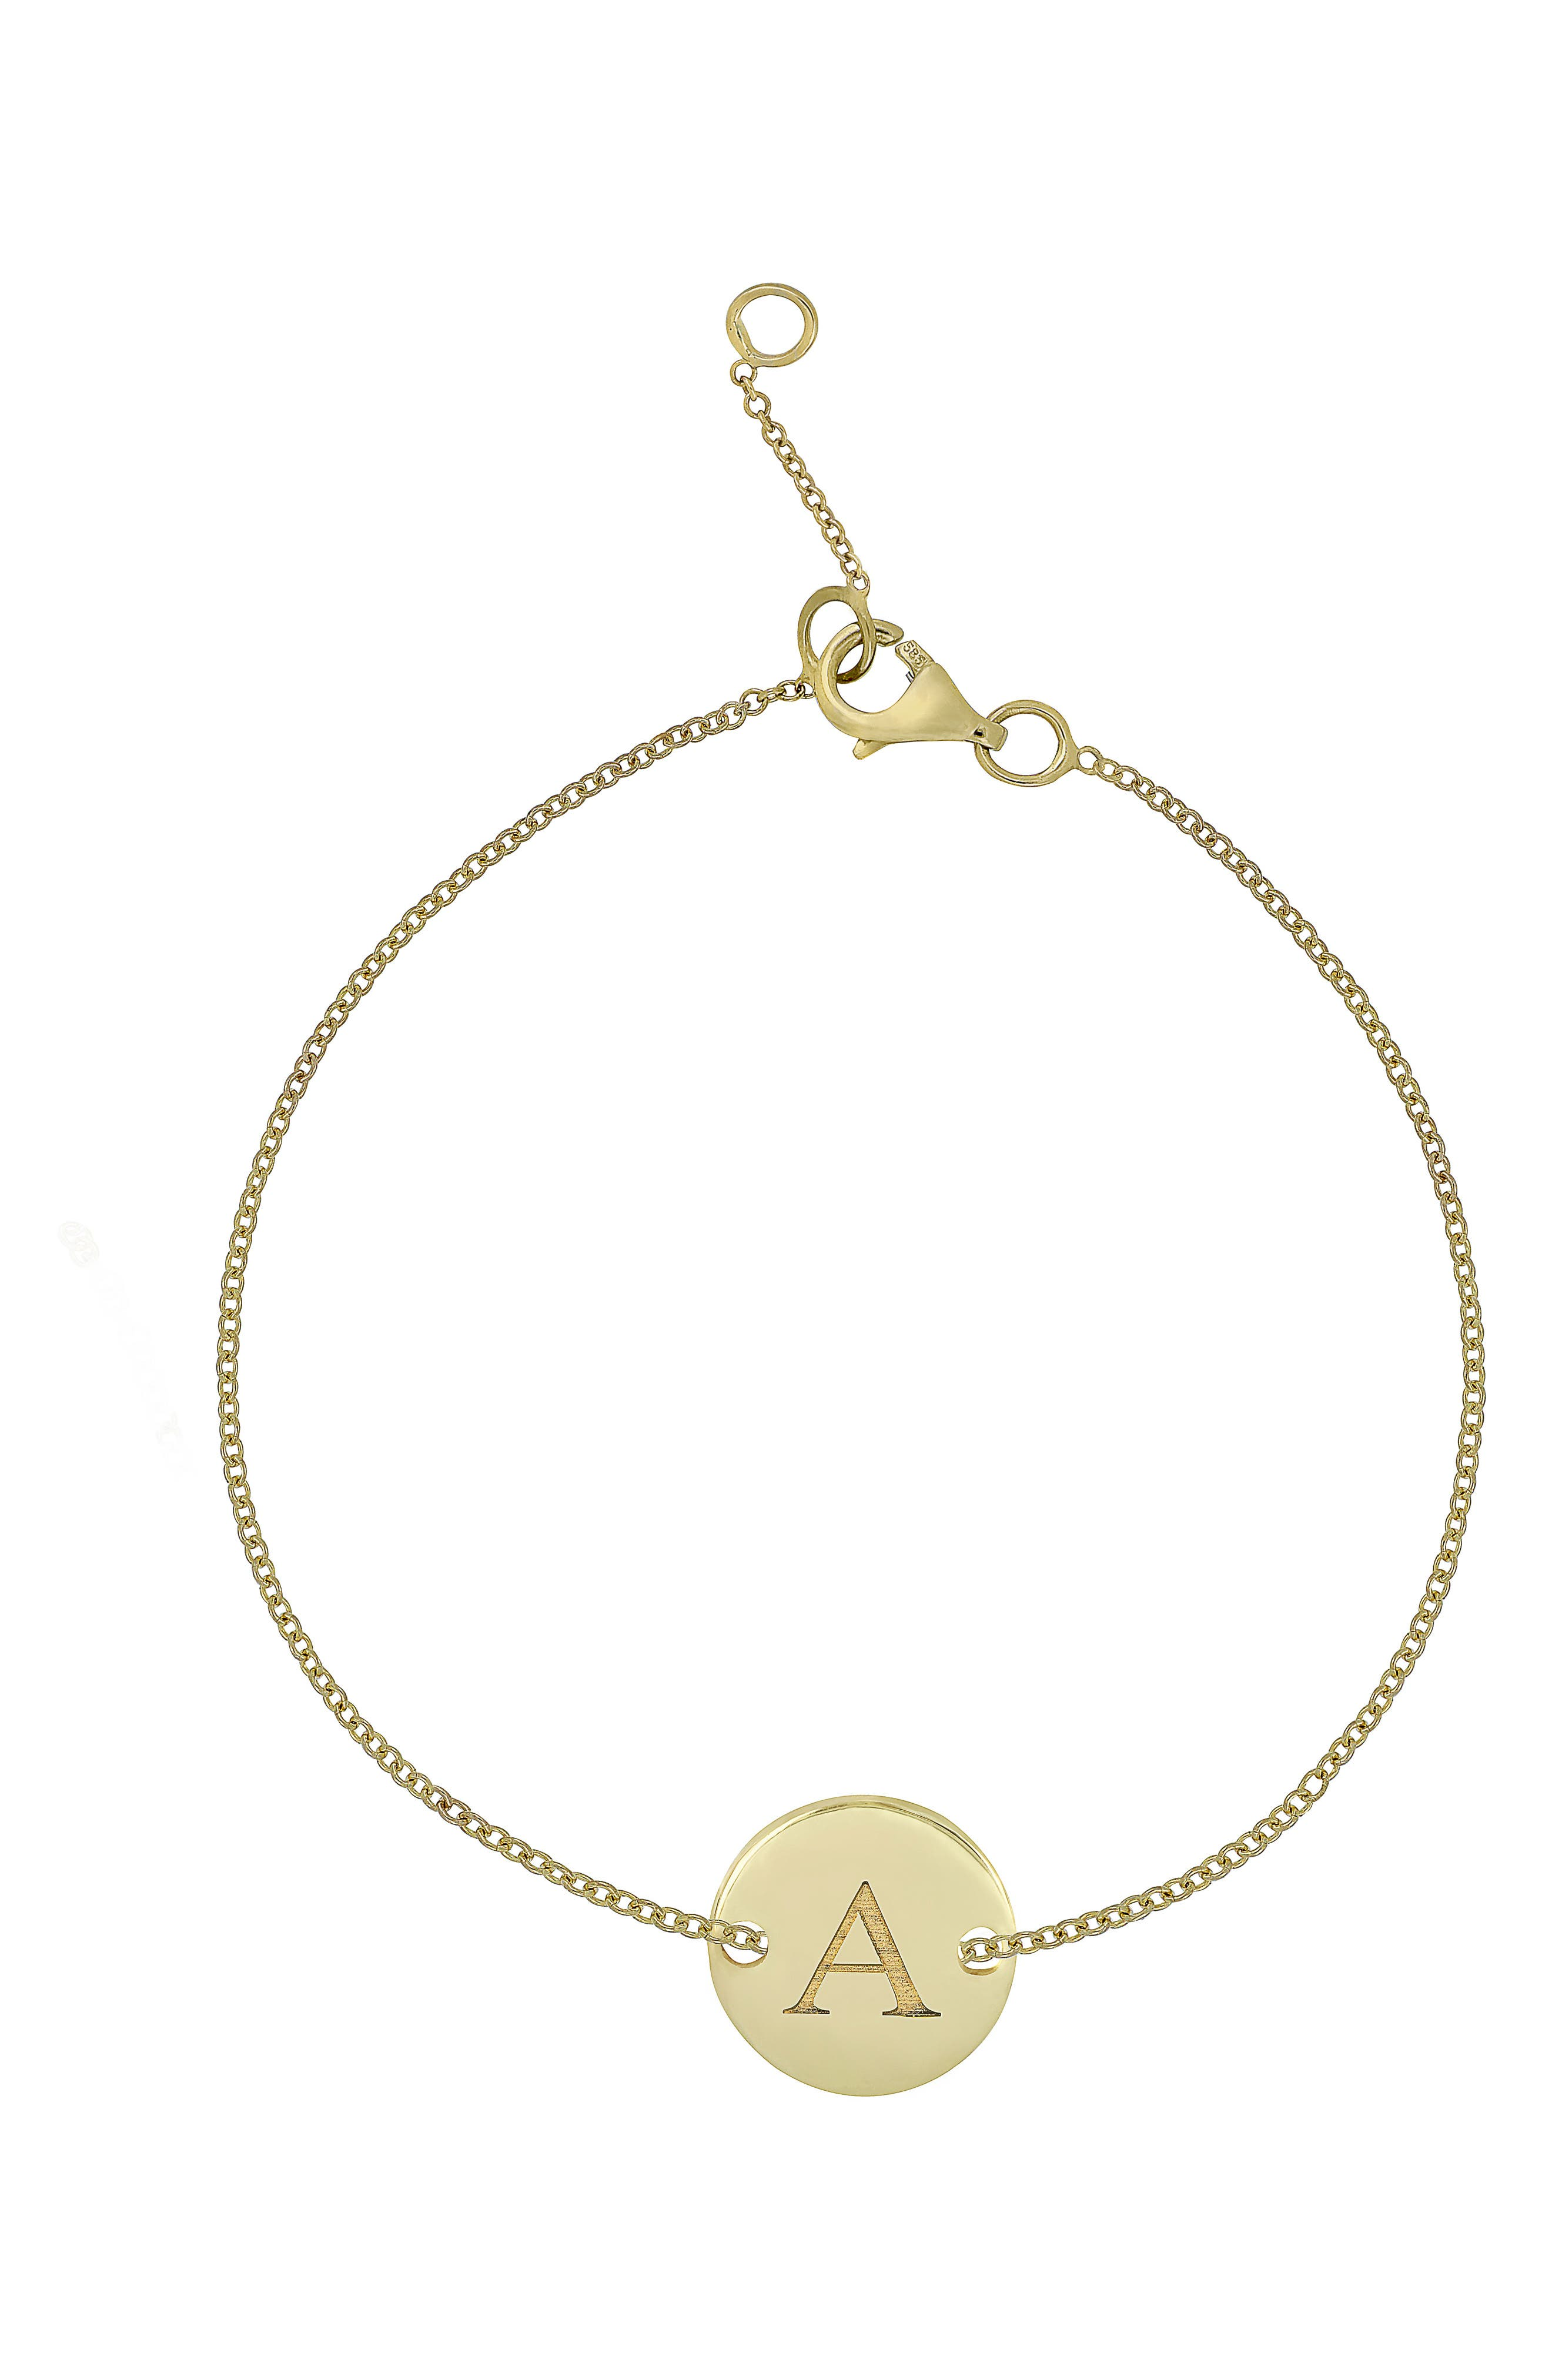 Main Image - Bony Levy 14k Gold Initial Bracelet (Nordstrom Exclusive)